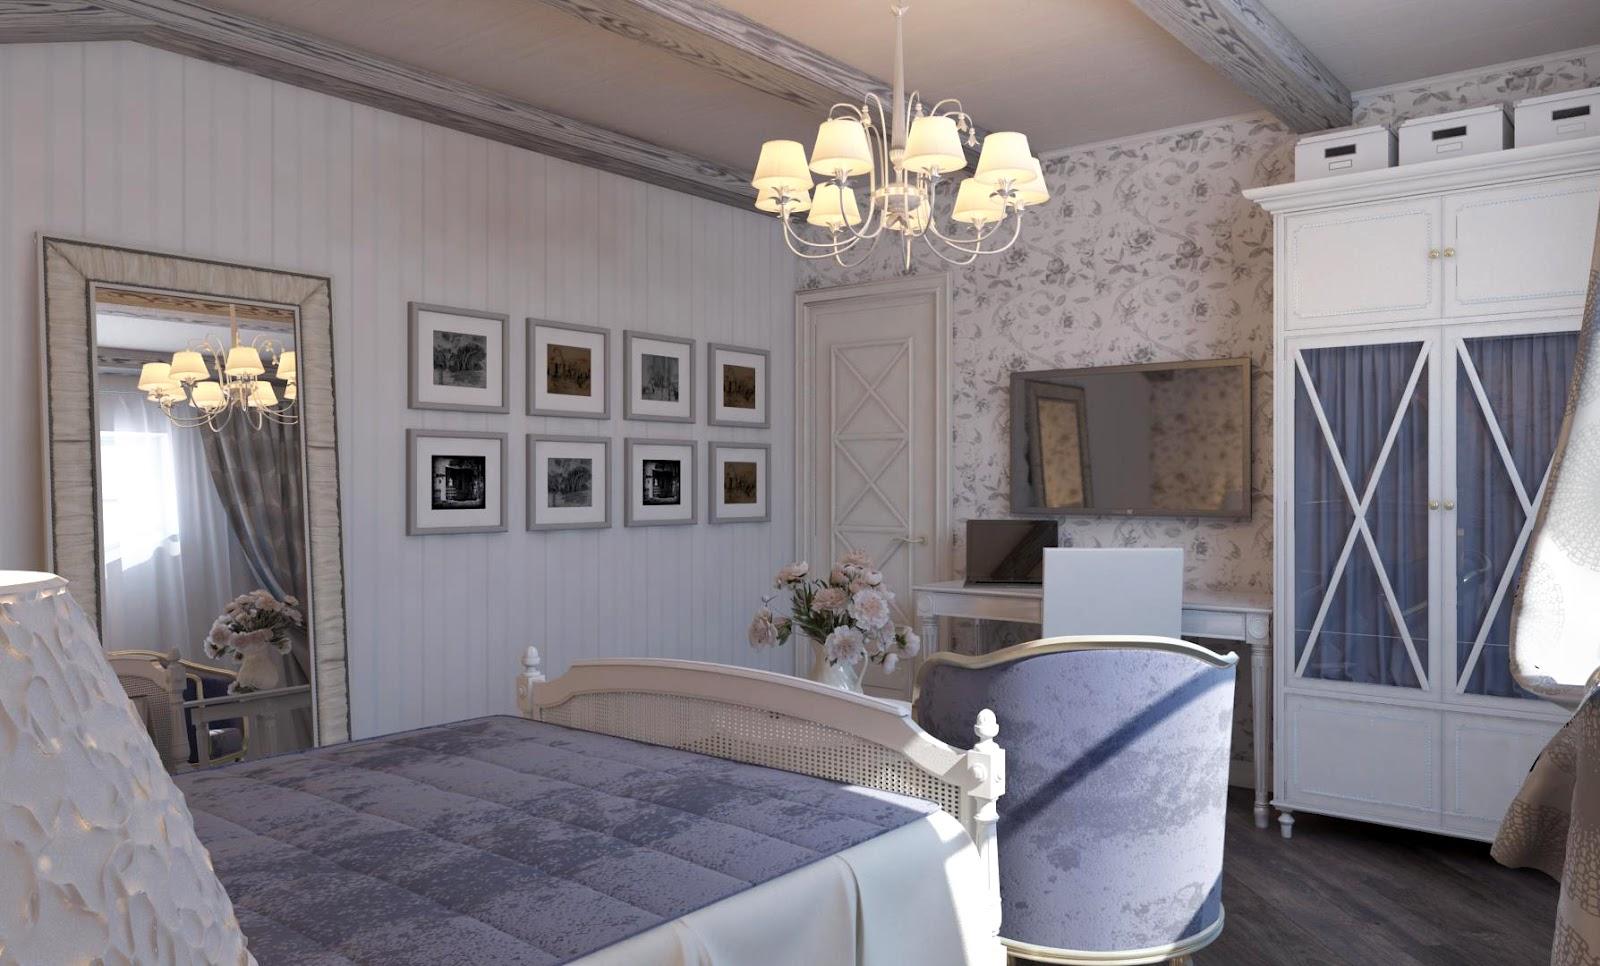 3d design bedroom in the style of provence for Arredamento stile provenzale